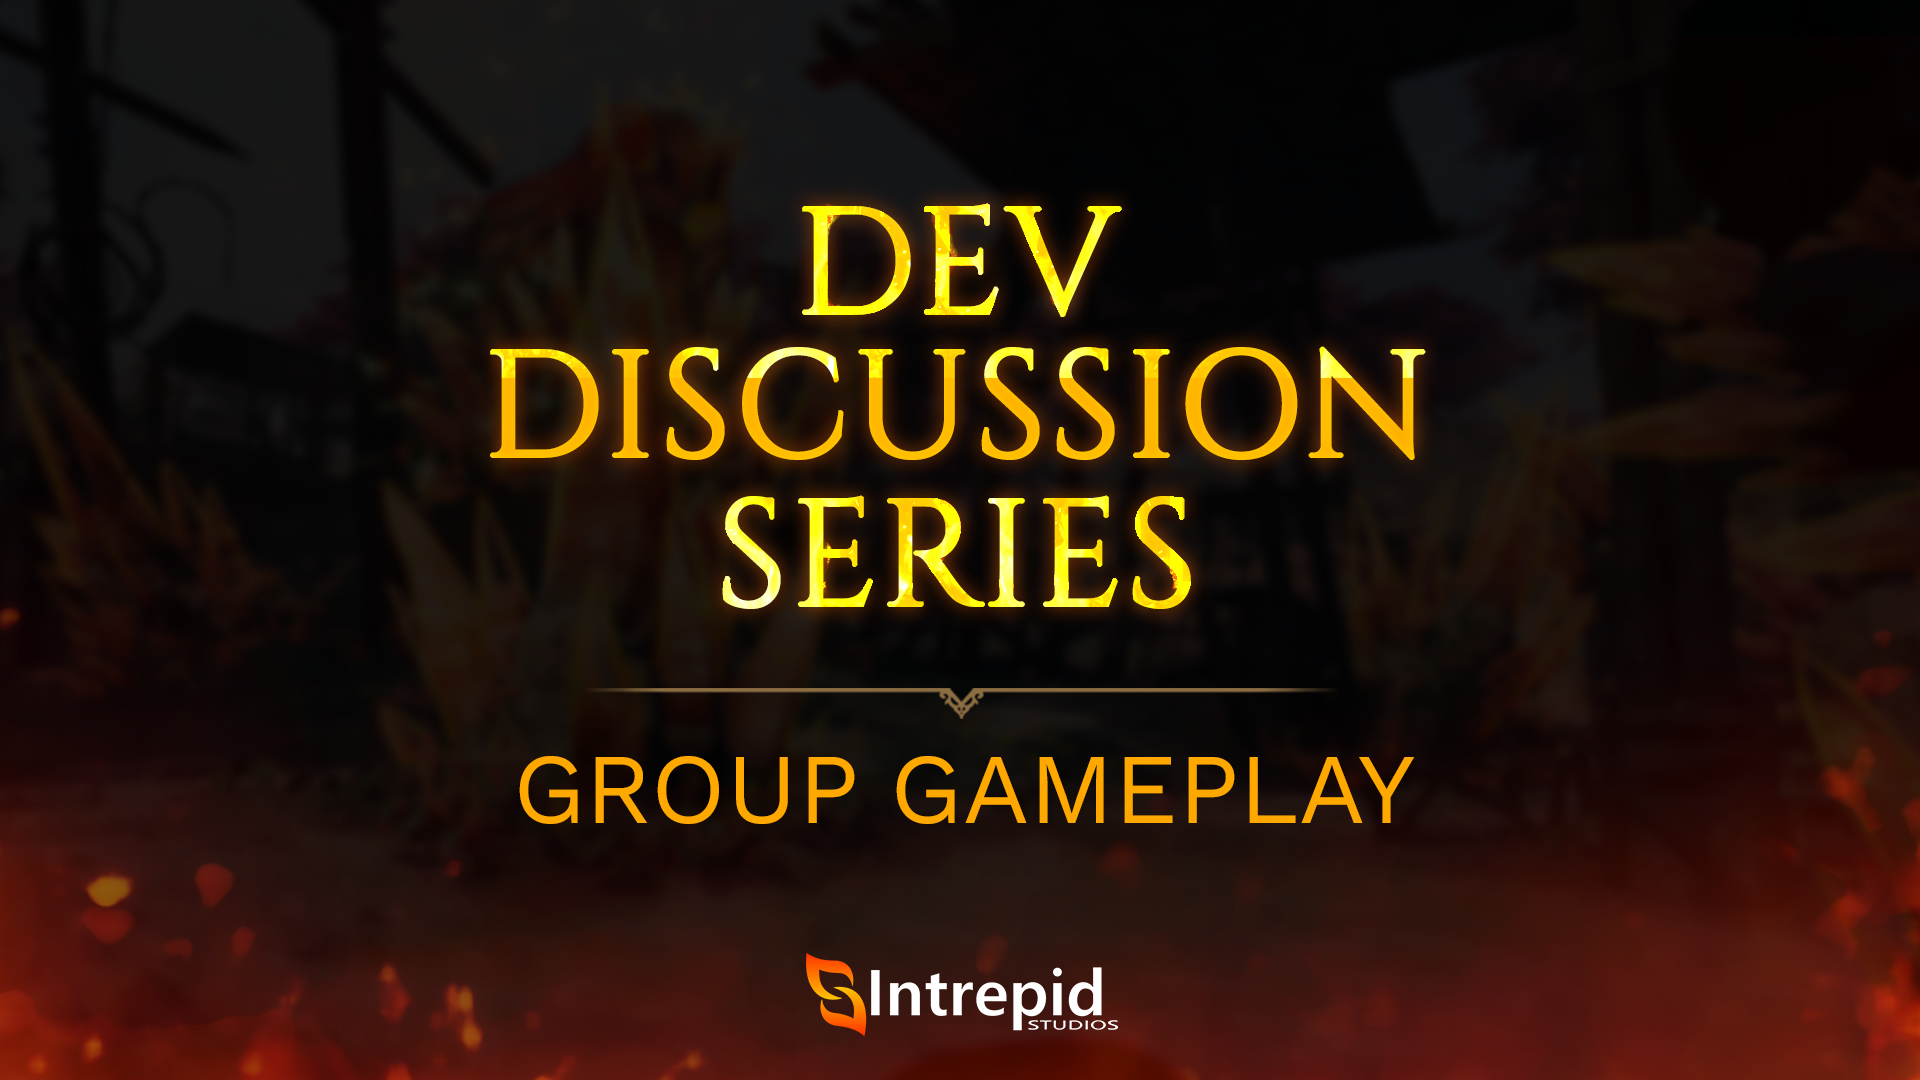 2019_Dev_Discussion_Series_Group_Gameplay.png